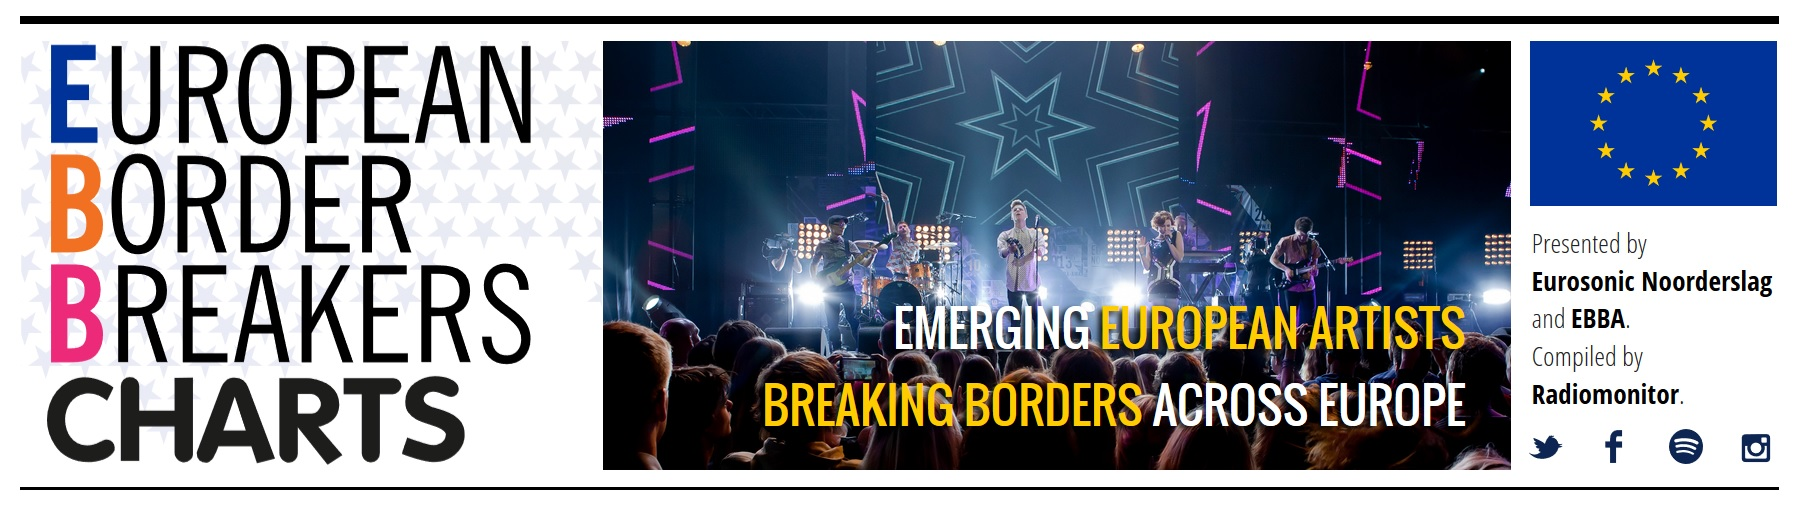 European Border Breakers Charts header